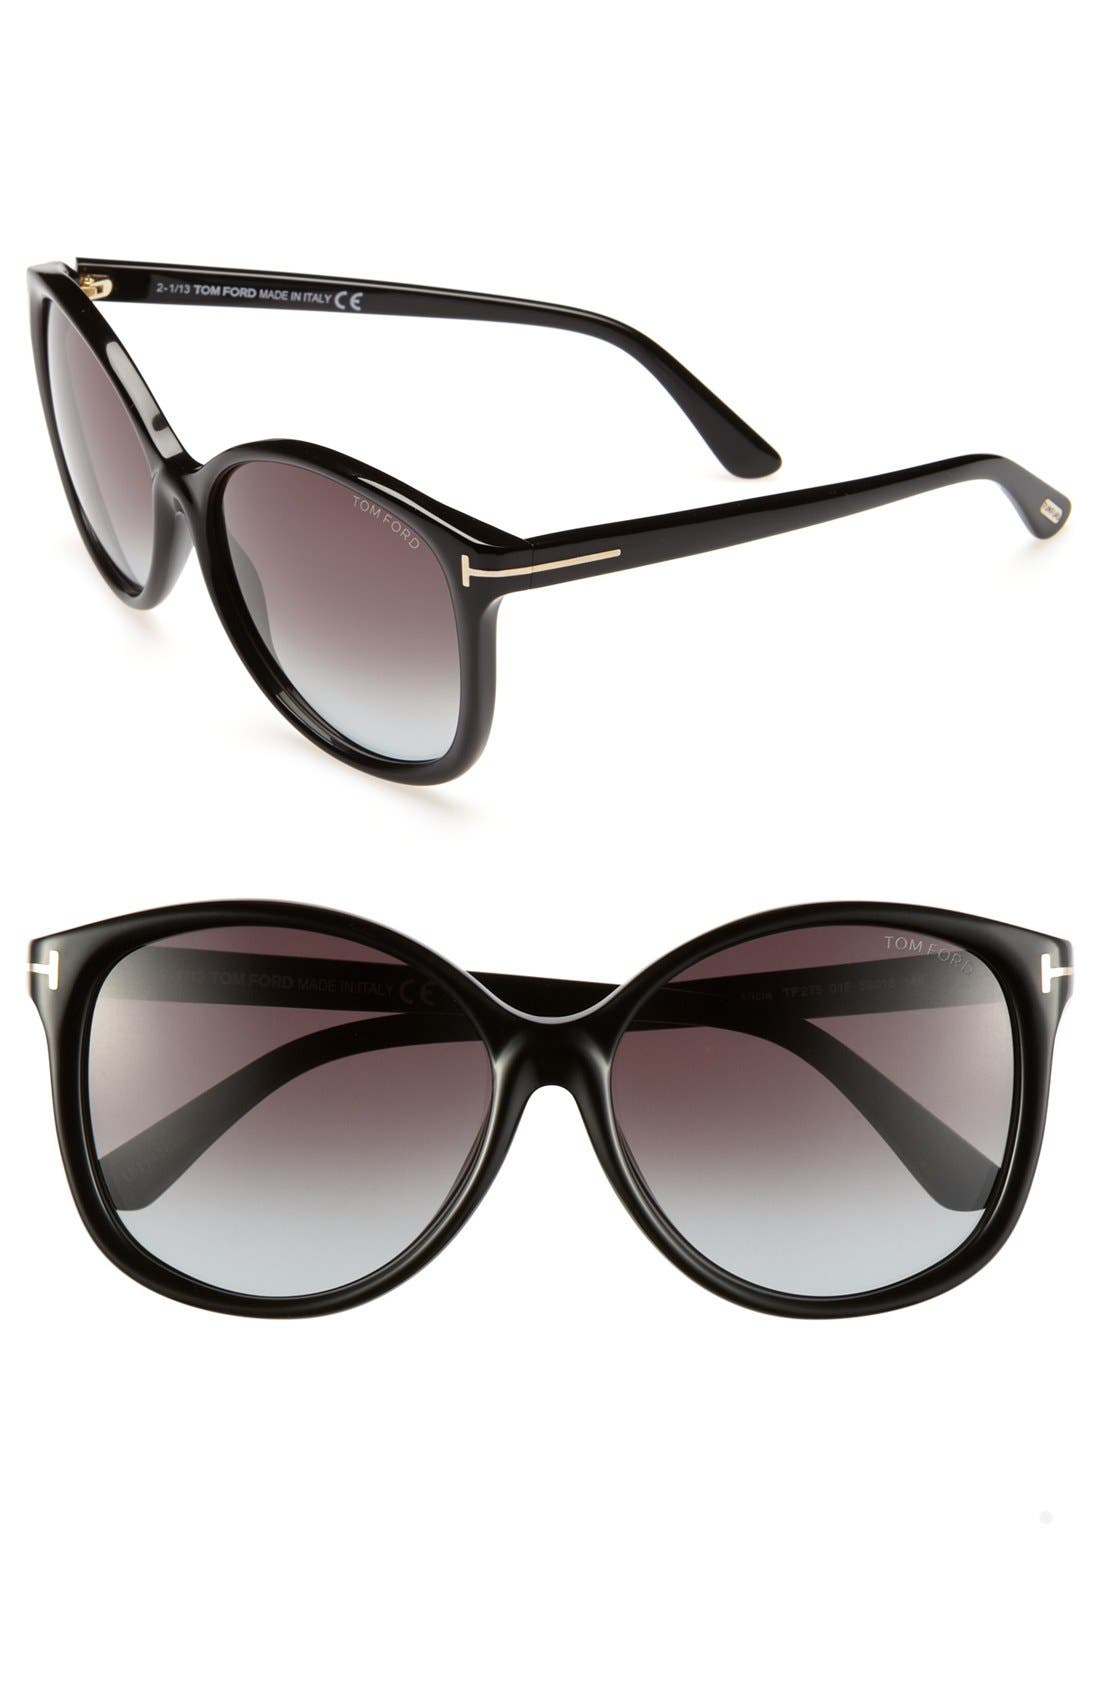 Main Image - Tom Ford 'Alicia' 59mm Sunglasses